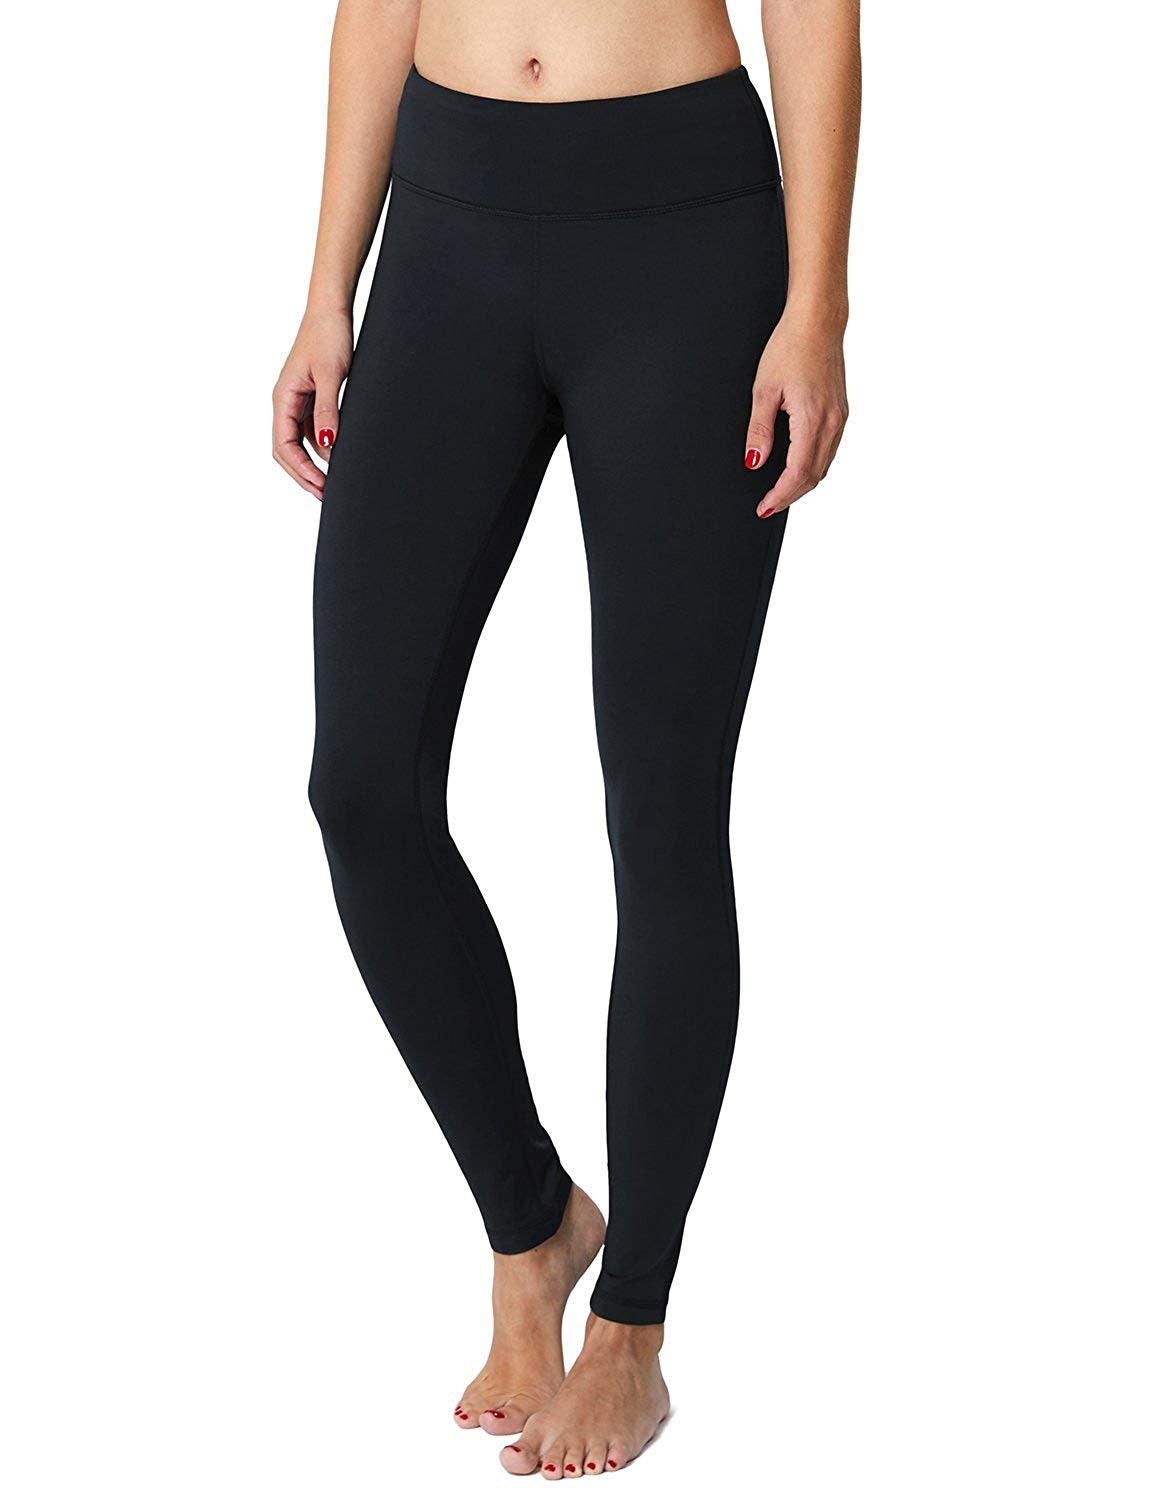 2d36150f94fd2 The 6 Best Leggings For Tall Women